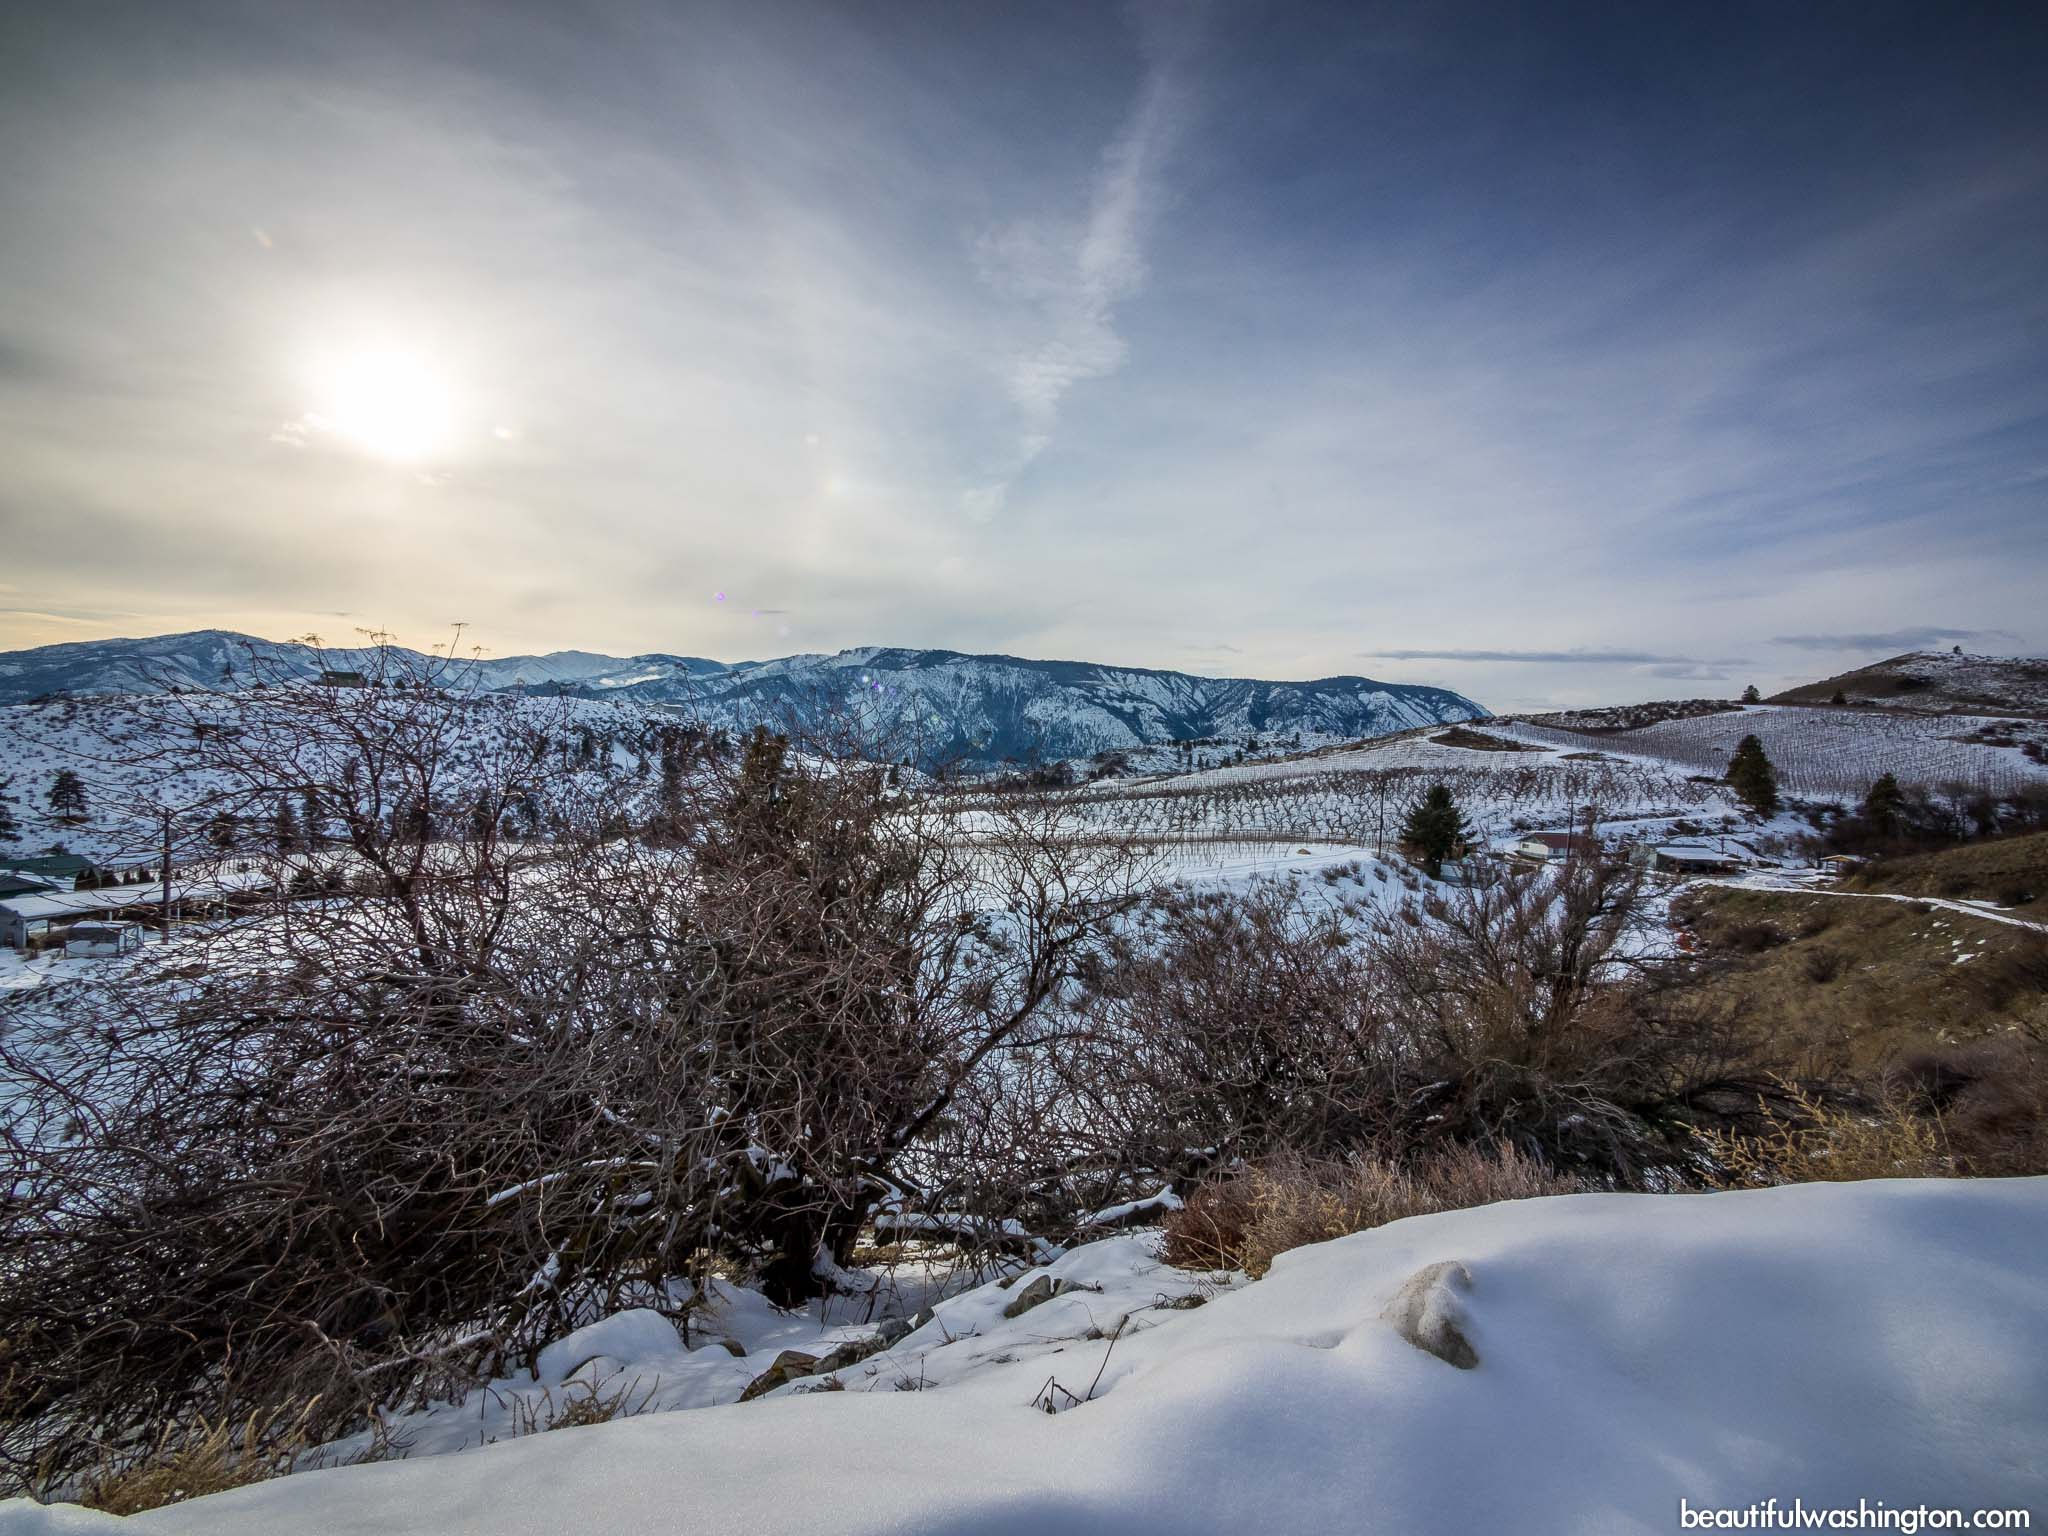 Photo from Manson hills farms near Chelan lake, Chelan County